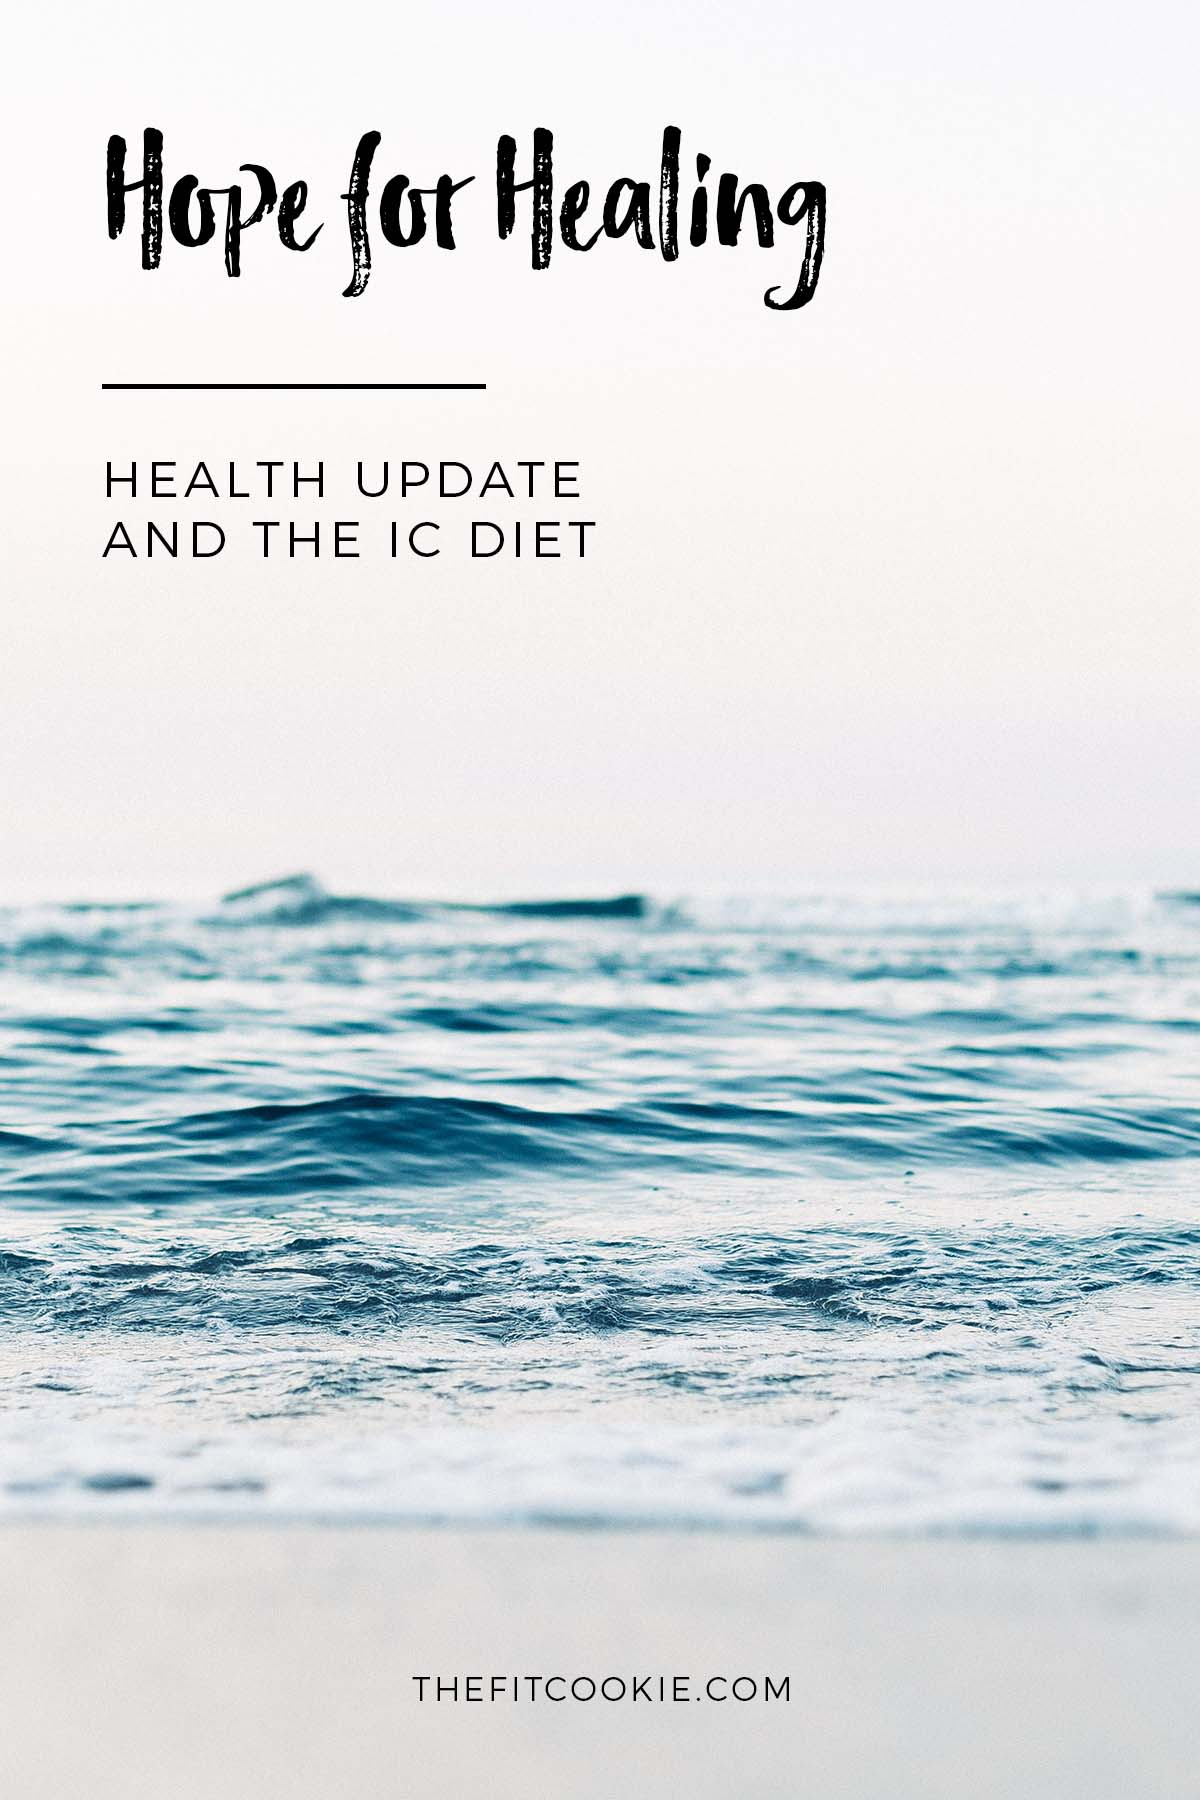 Hope for healing: a personal update on my health, how things are going, and more info about my interstitial cystitis diagnosis - @TheFitCookie